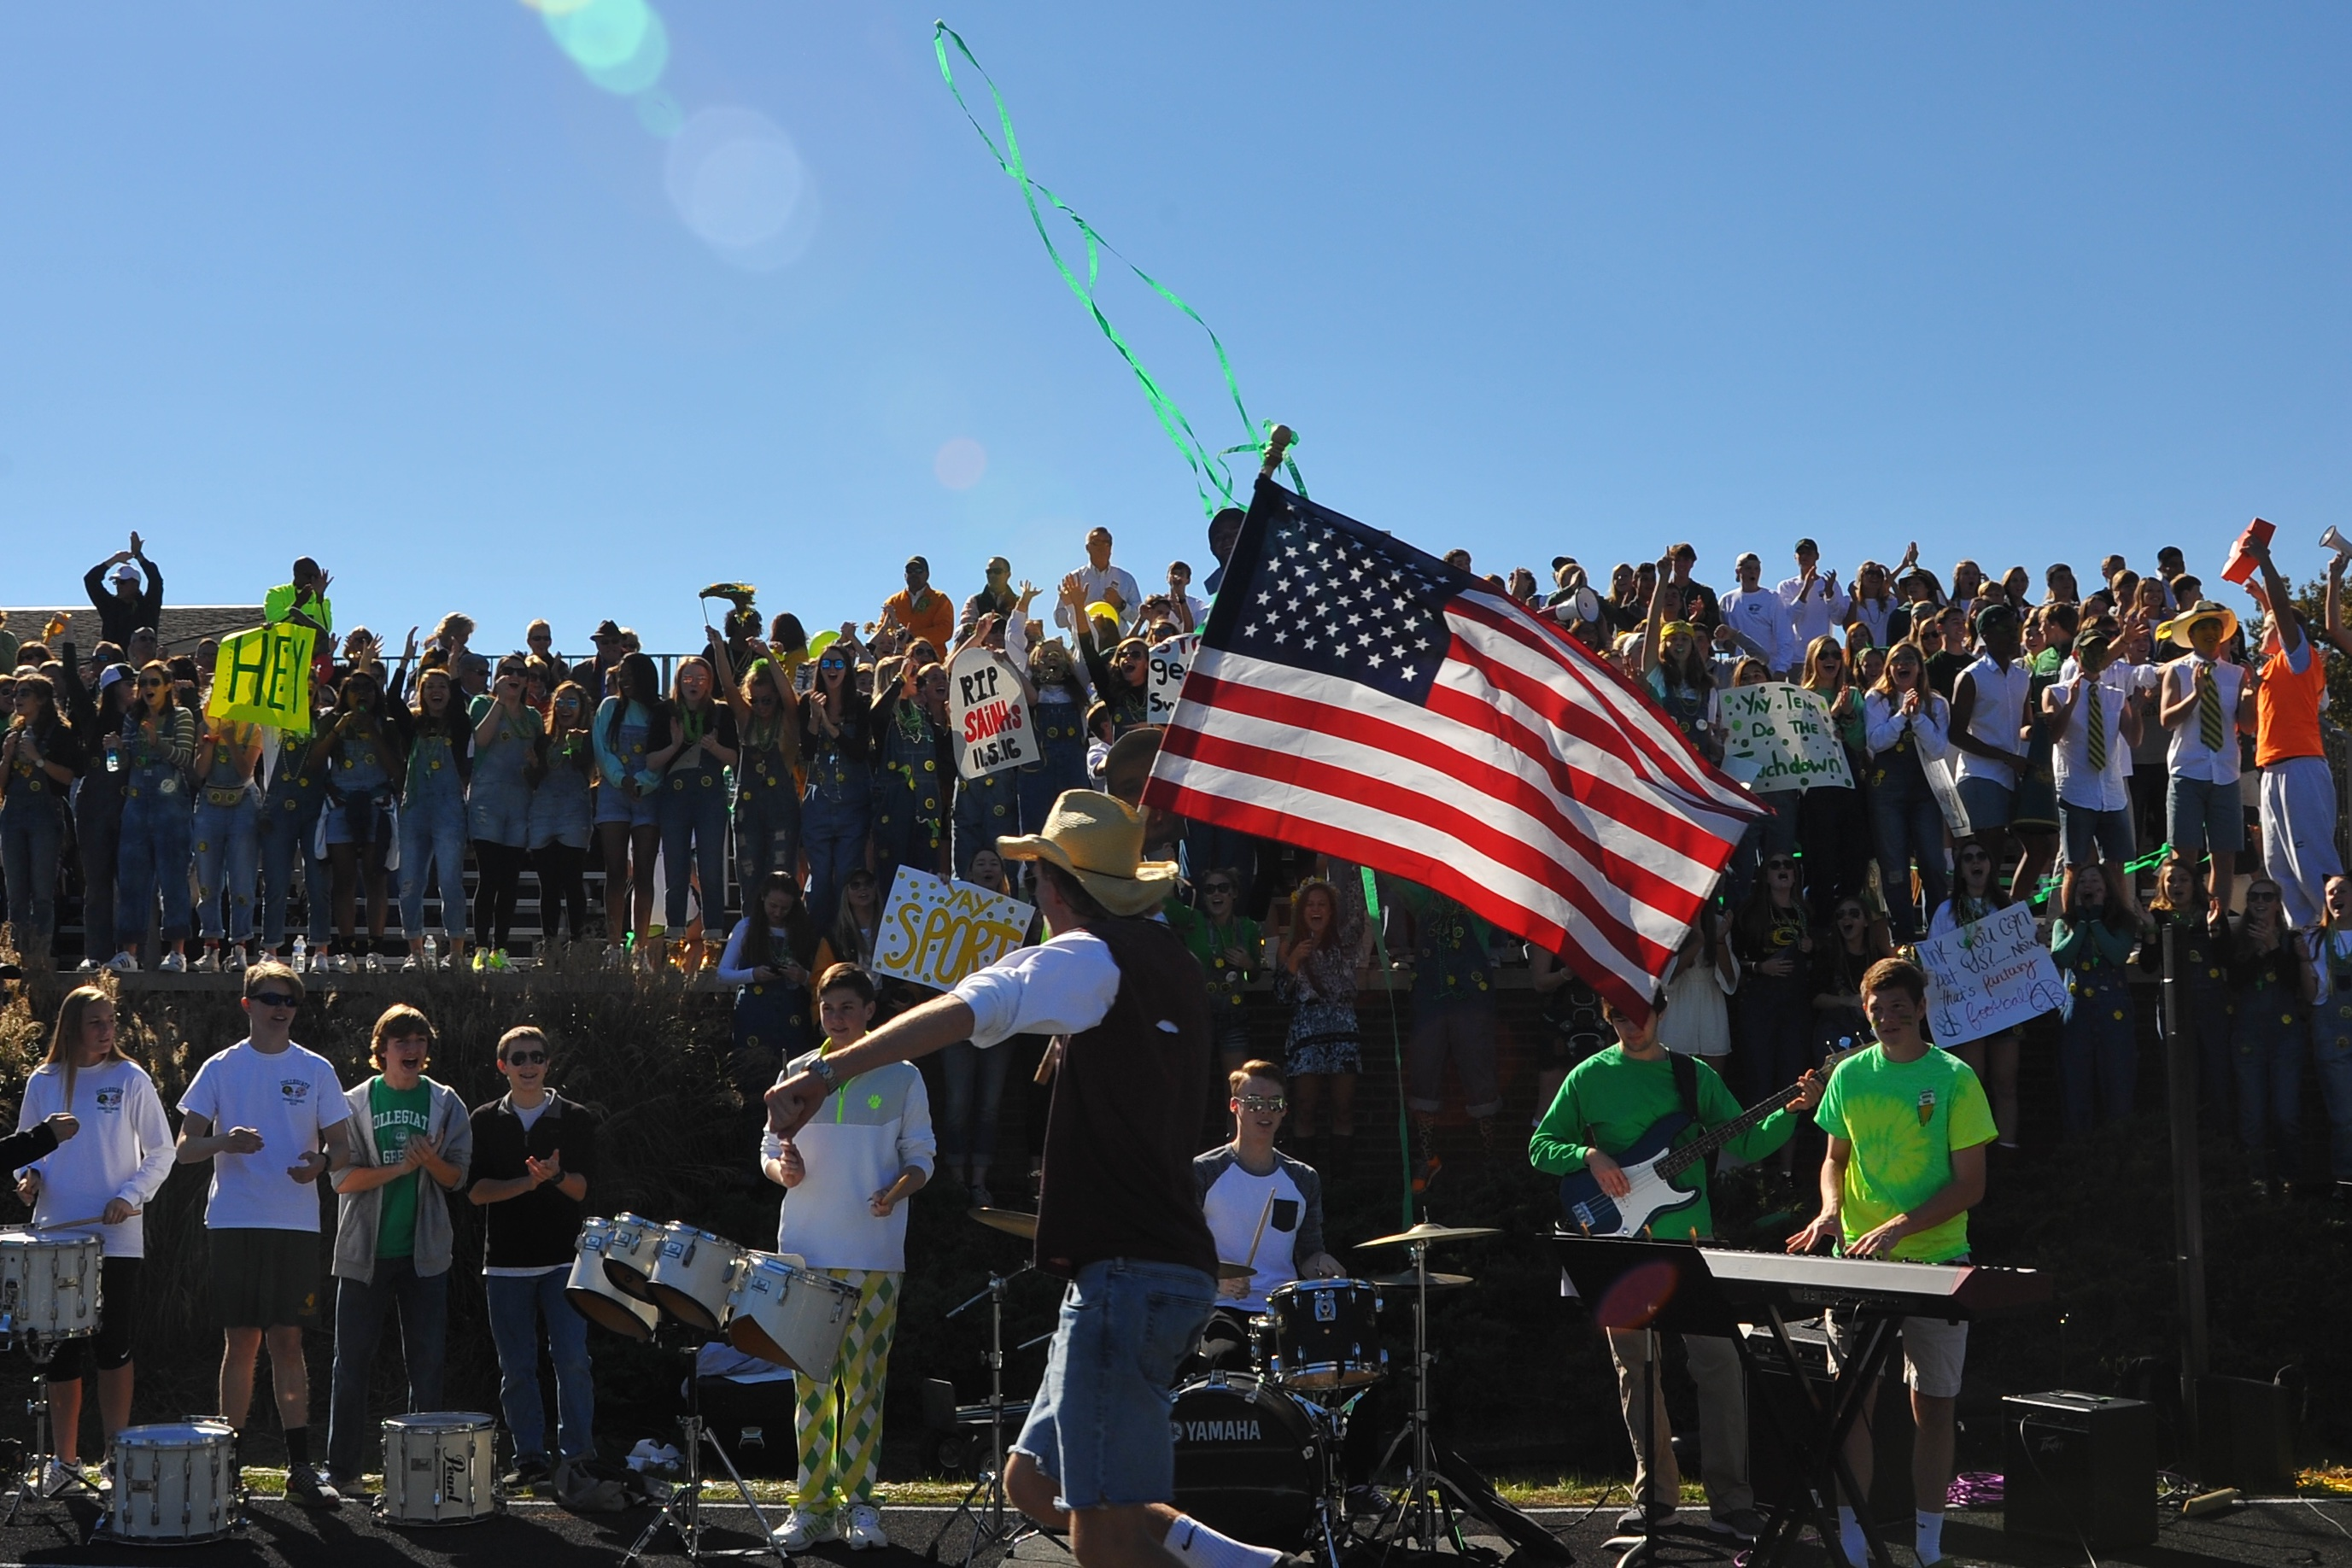 A view of the stands during the Homecoming game Photo Courtesy of Toler Innes